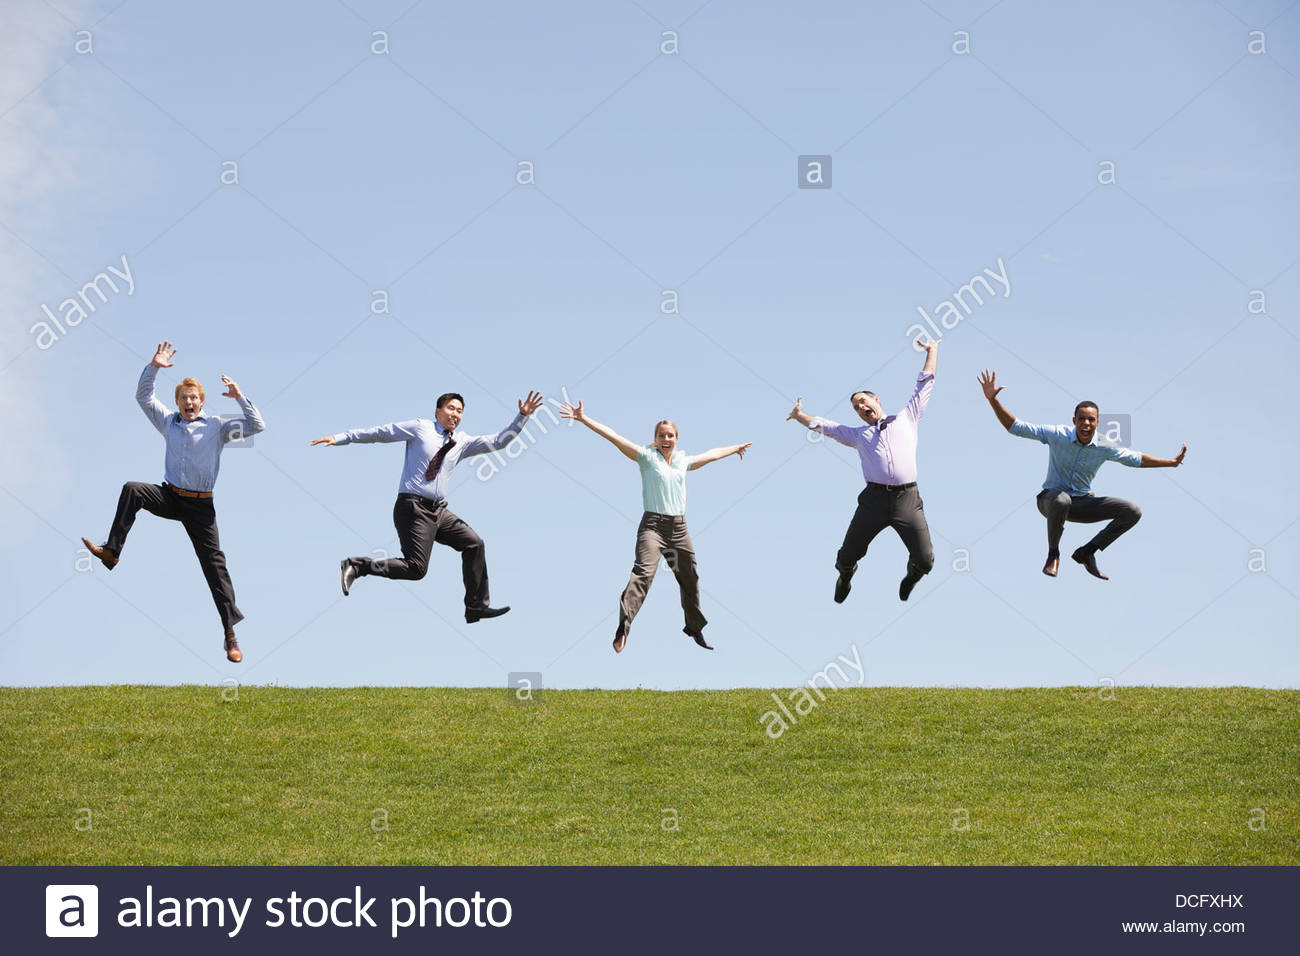 Group of business people jumping simultaneously - Stock Image